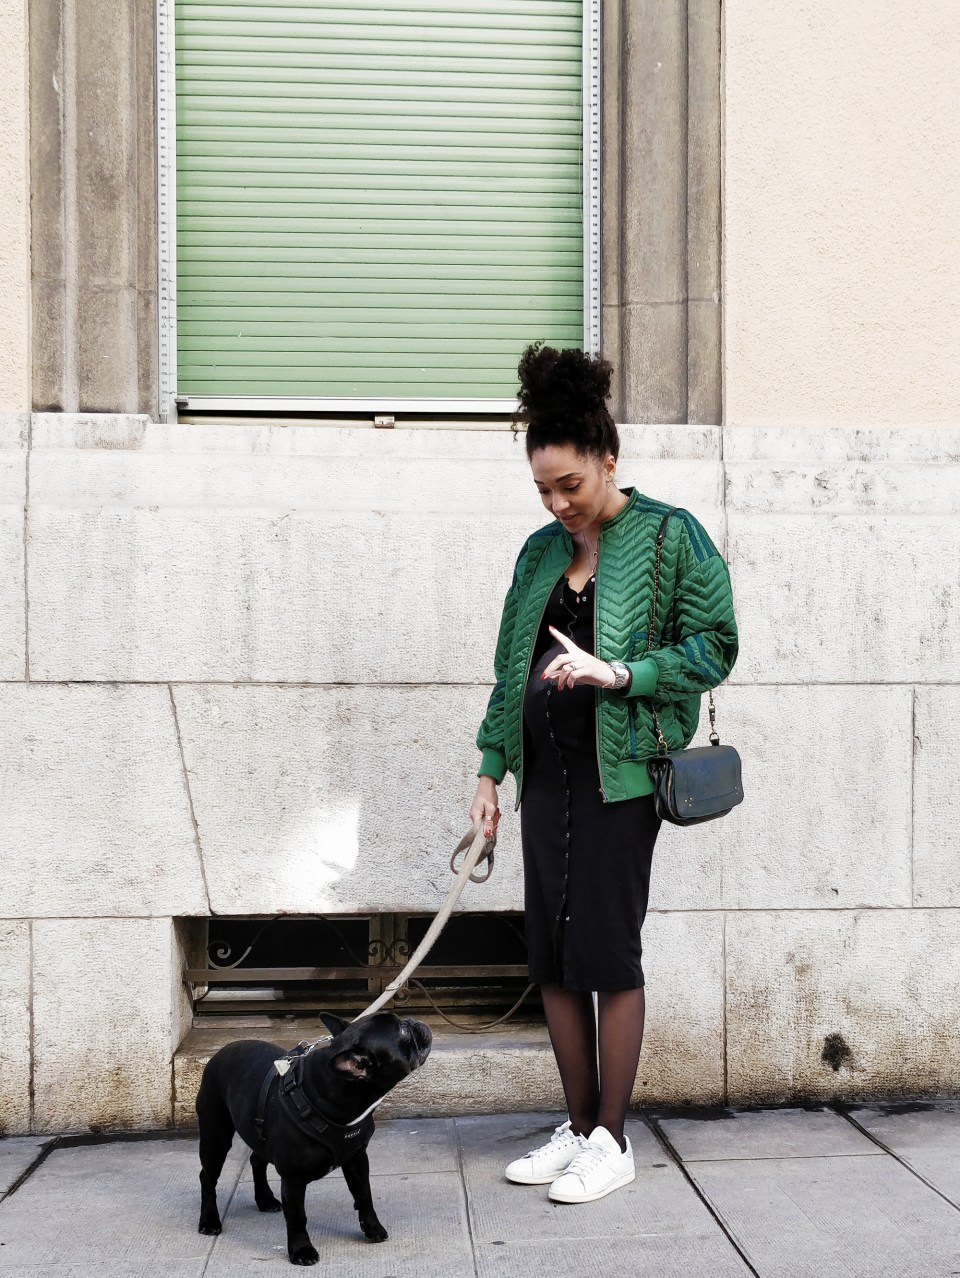 mercredie-blog-mode-geneve-swiss-blogger-blogeuse-bloggeuse-robe-de-grossesse-moulante-noire-missguided-ideale